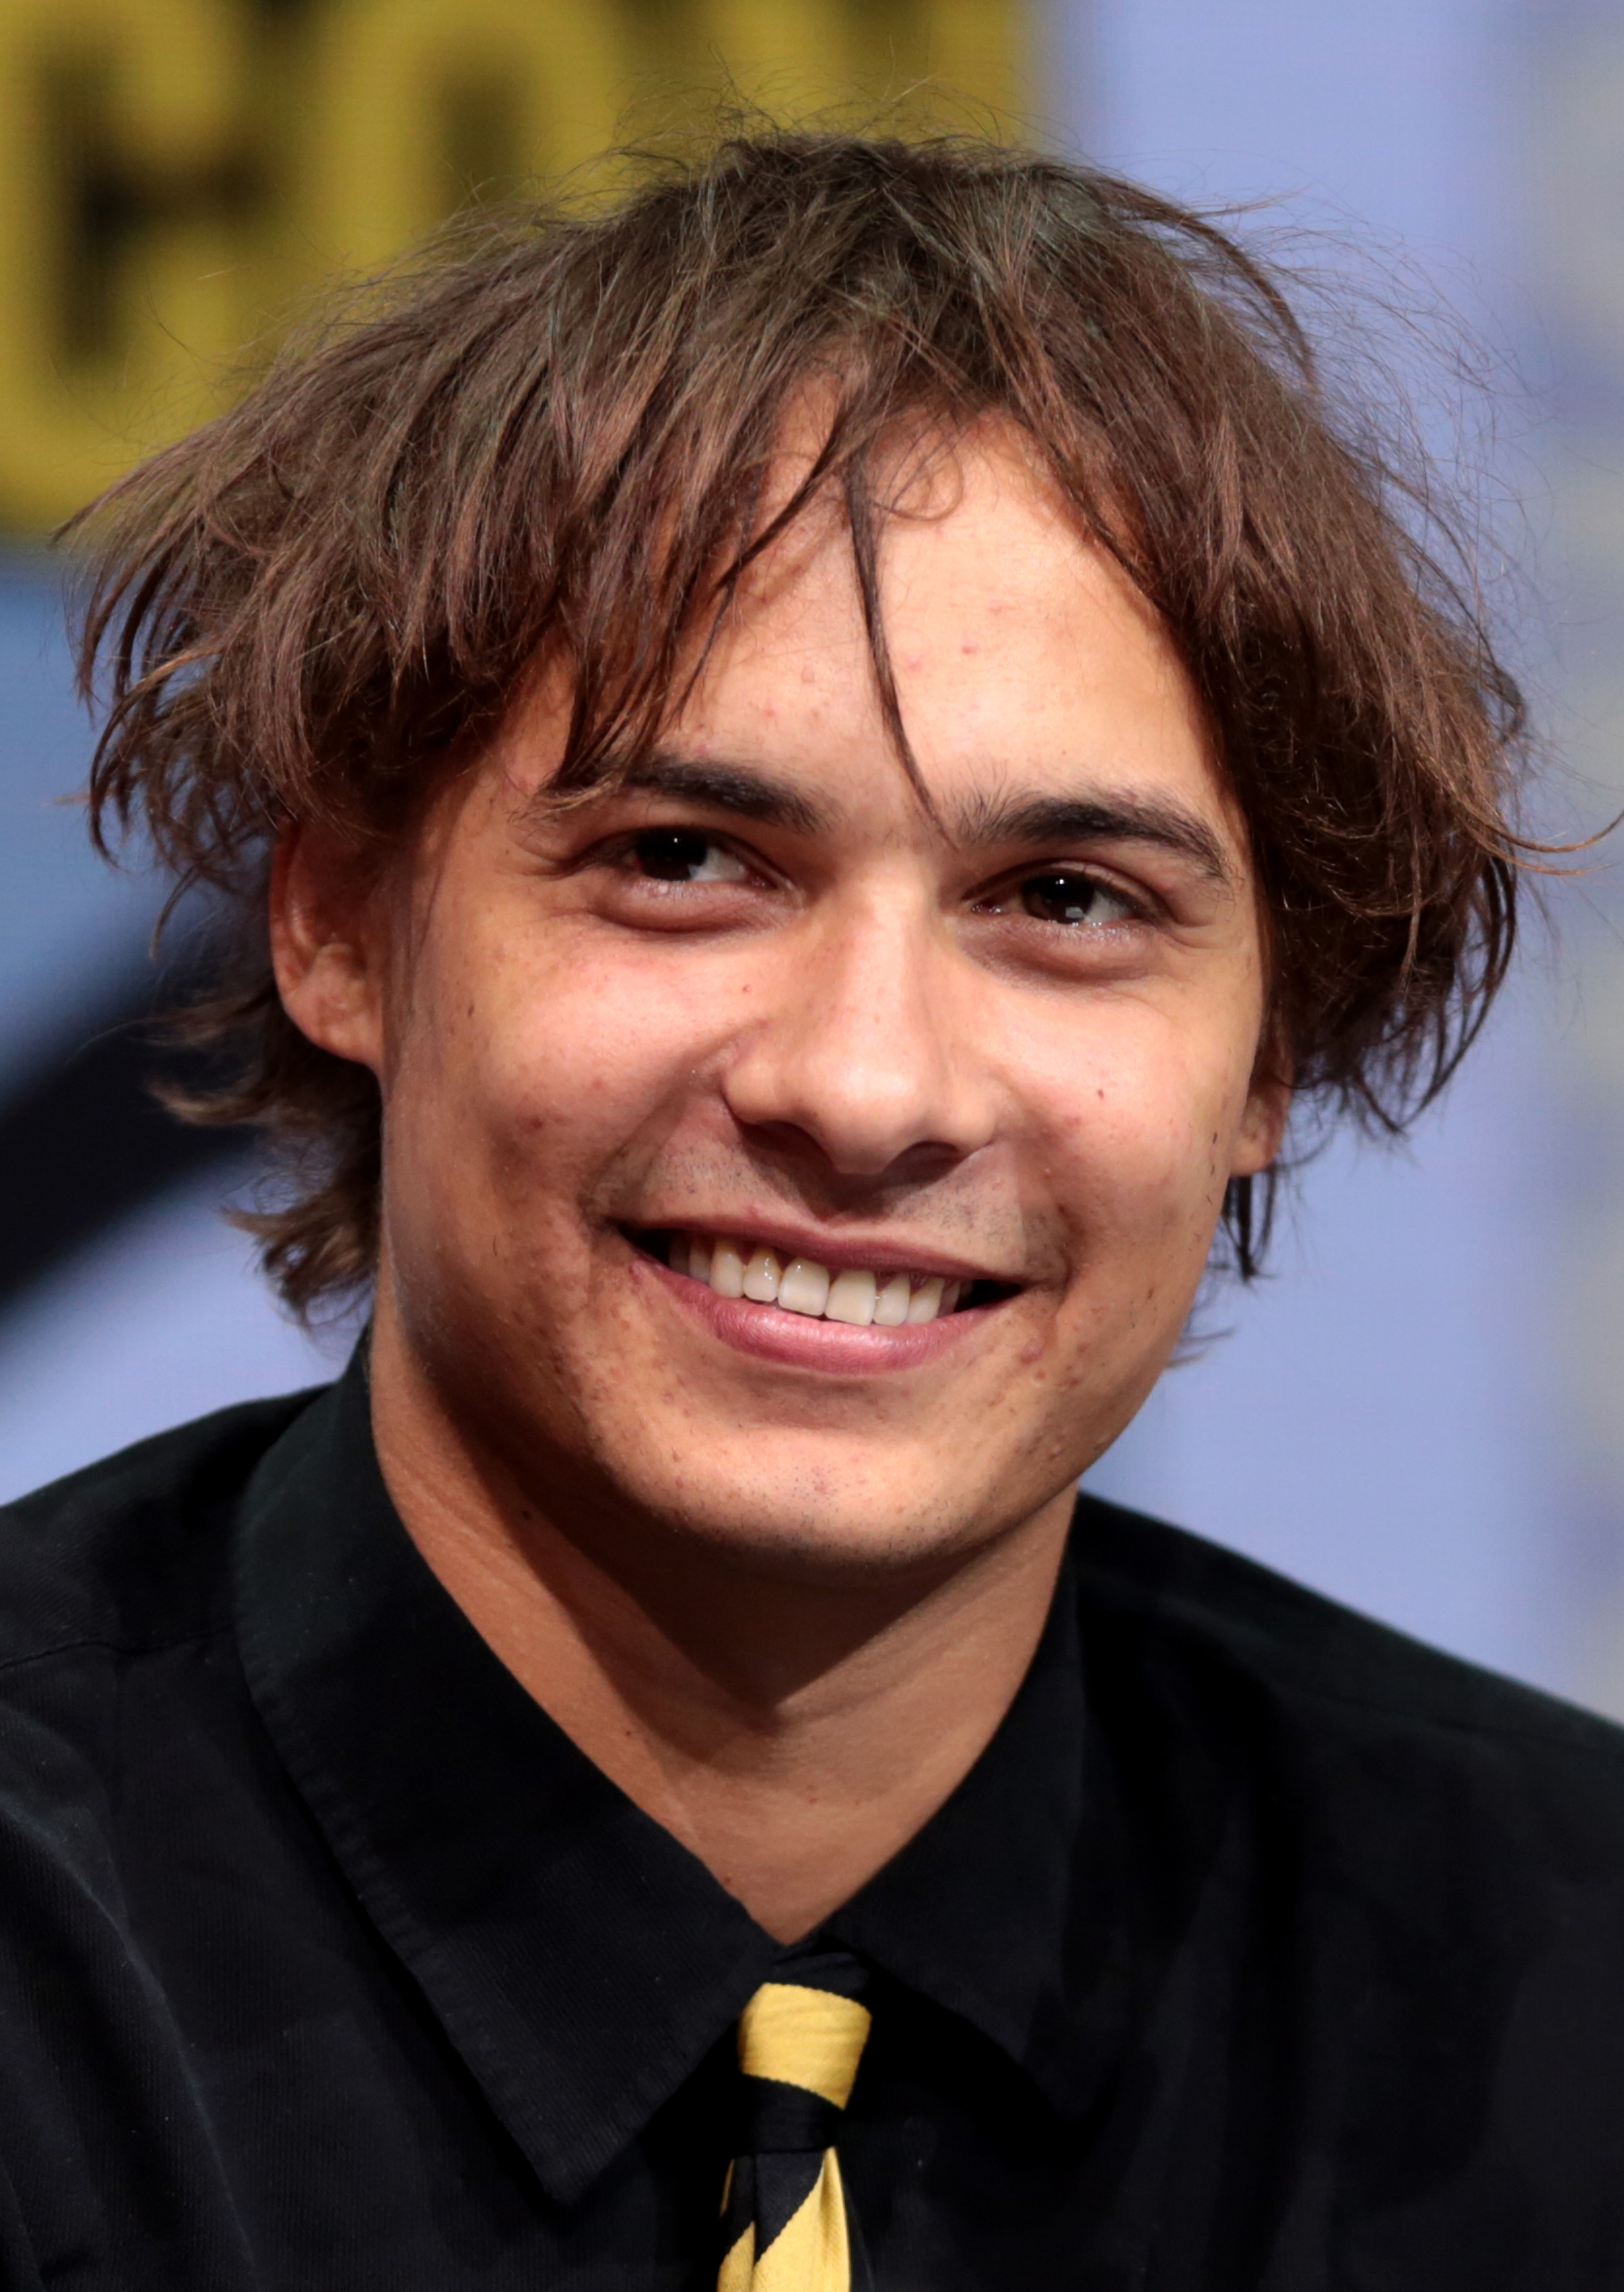 Acteur Fear The Walking Dead : acteur, walking, Frank, Dillane, Wikipédia